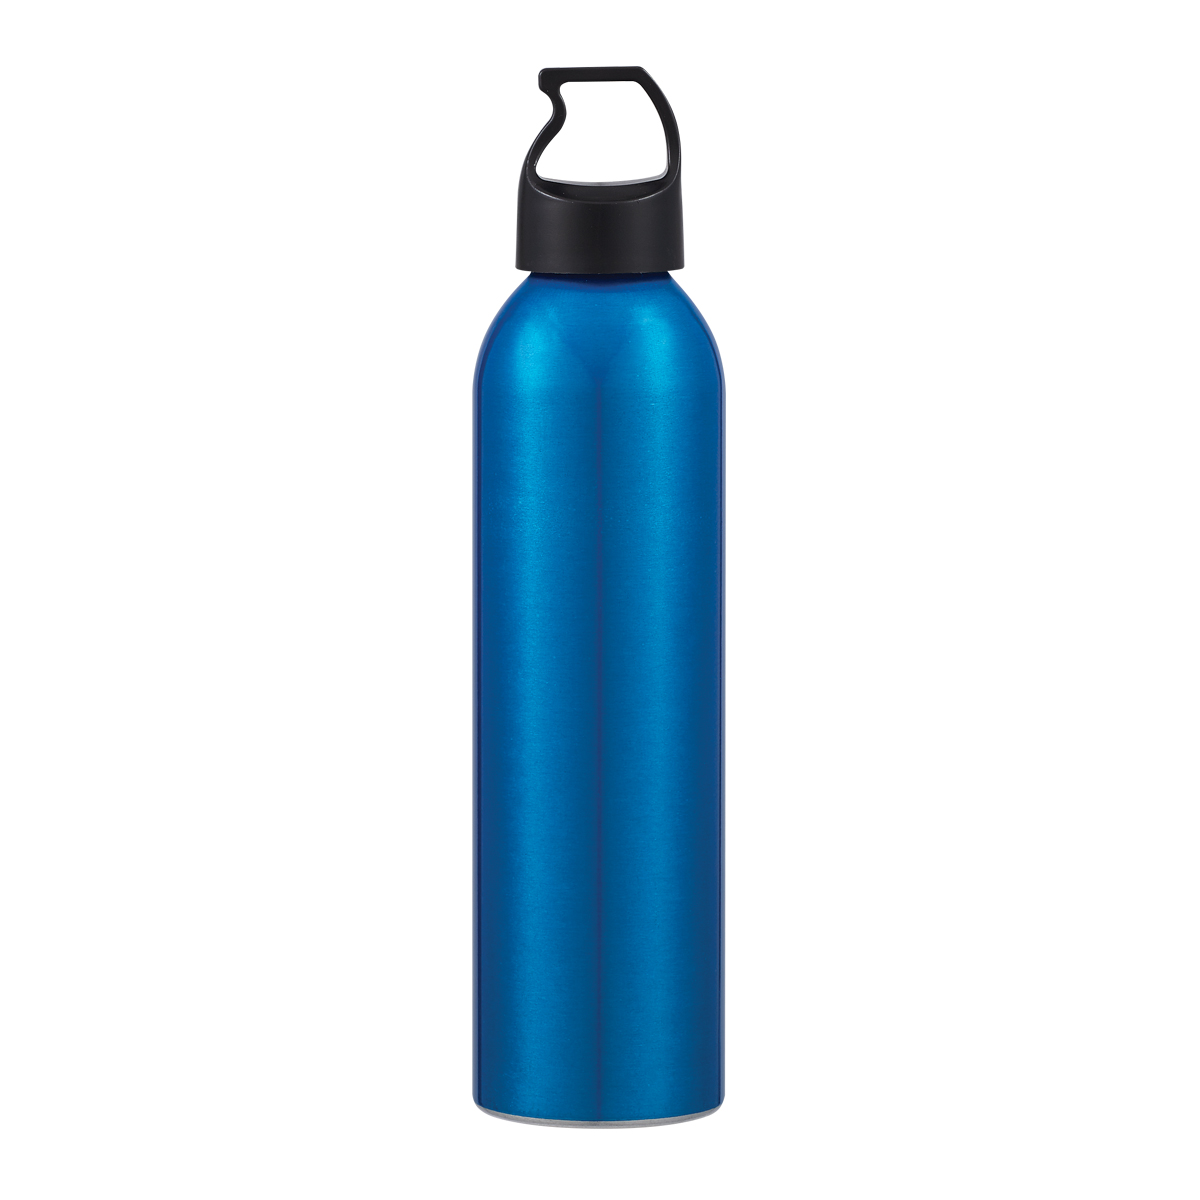 #CM 5724 - 24 Oz. US Aluminum Bottle